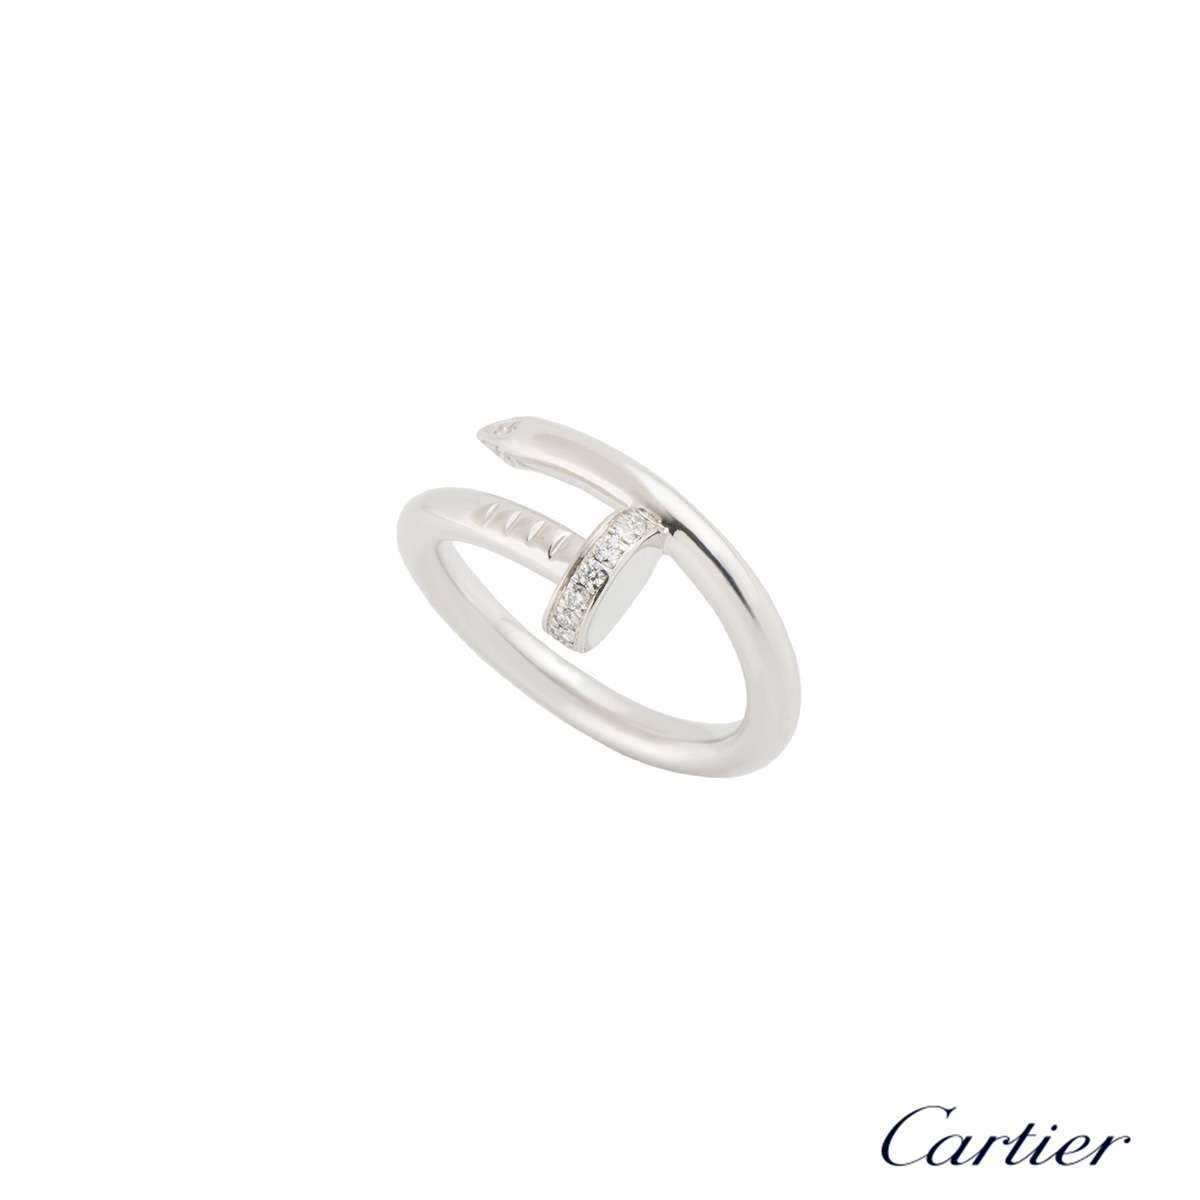 Cartier White Gold Diamond Juste Un Clou Ring Size 53 B4092753